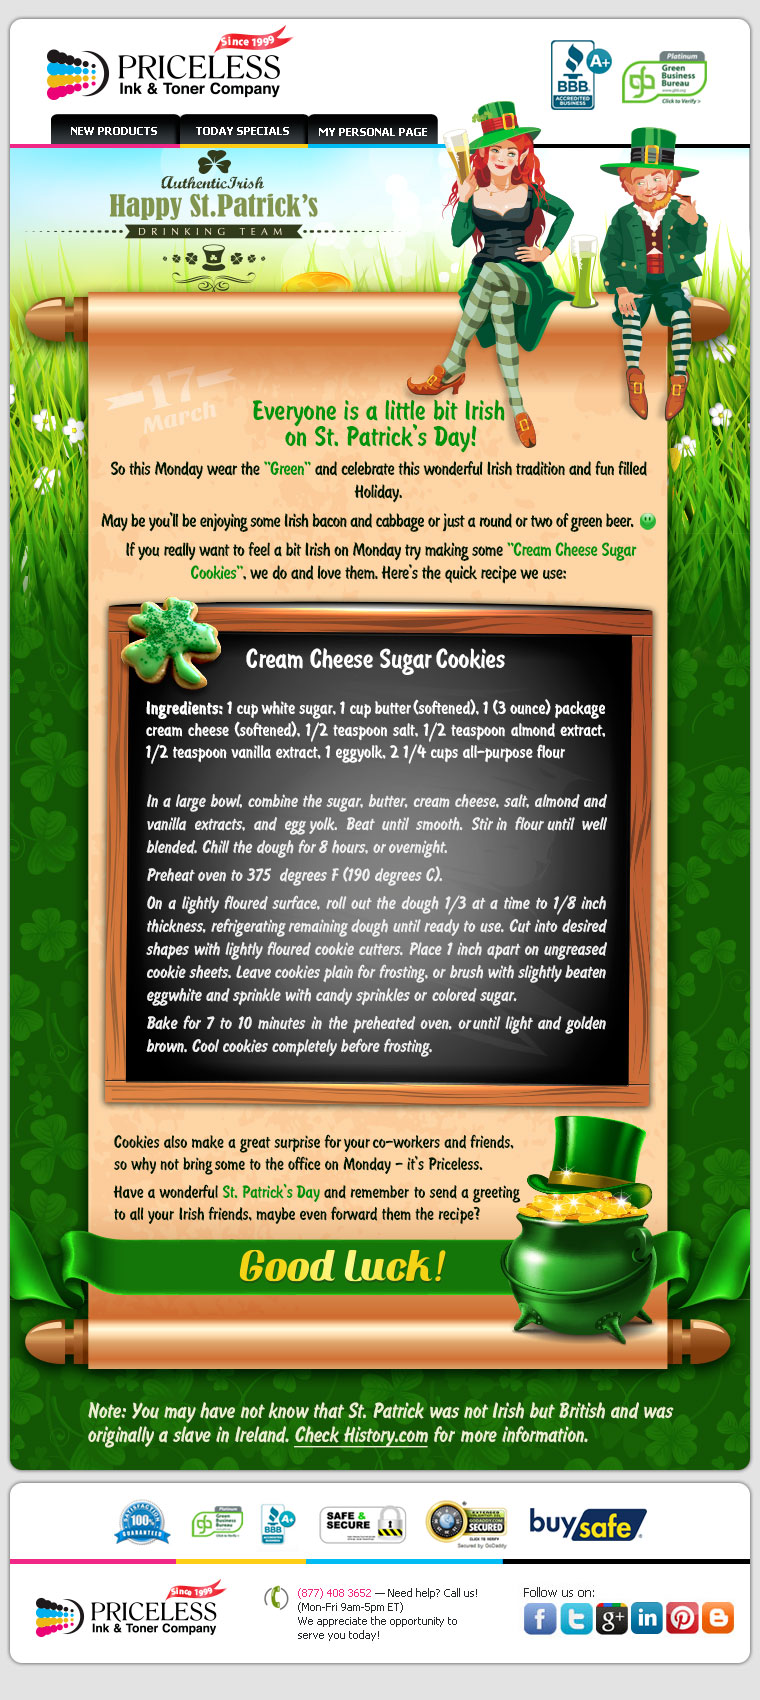 Everyone is a little bit Irish on St.Patrick's Day! So this Monday wear the Green and celebrate this wonderful Irish tradition and fun filled Holiday. May be you'll be enjoying some Irish bacon and cabbage or just a round or two of green beer. If you really want to feel a bit Irish on Monday try making some Cream Cheese Sugar Cookies, we do and love them. Cookies also make a great surprise for your co-workers and friends, so why not bring some to the office on Monday - it's Priceless. Have a wonderful St. Patrick's Day and remember to send a greeting to all your Irish friends, maybe even forward them the recipe?